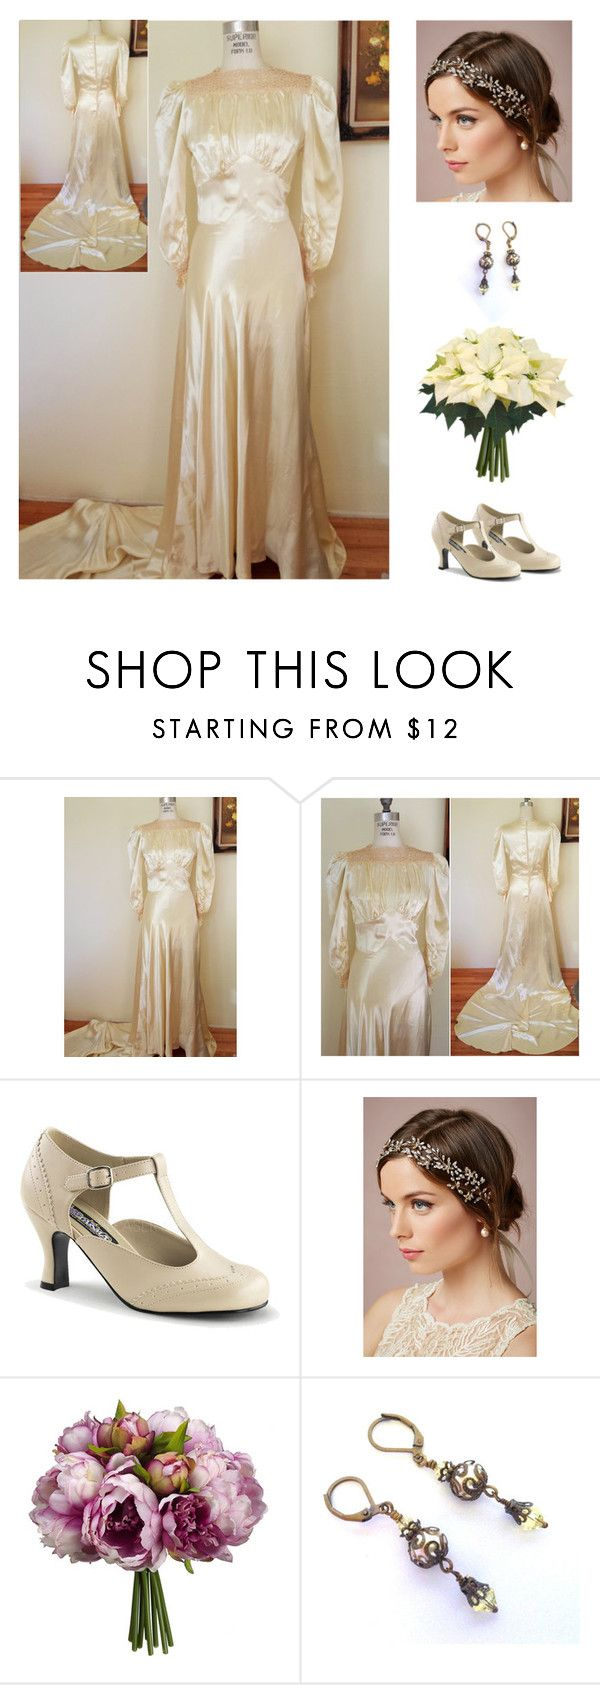 30s Themed Wedding By Dezaval Liked On Polyvore Featuring